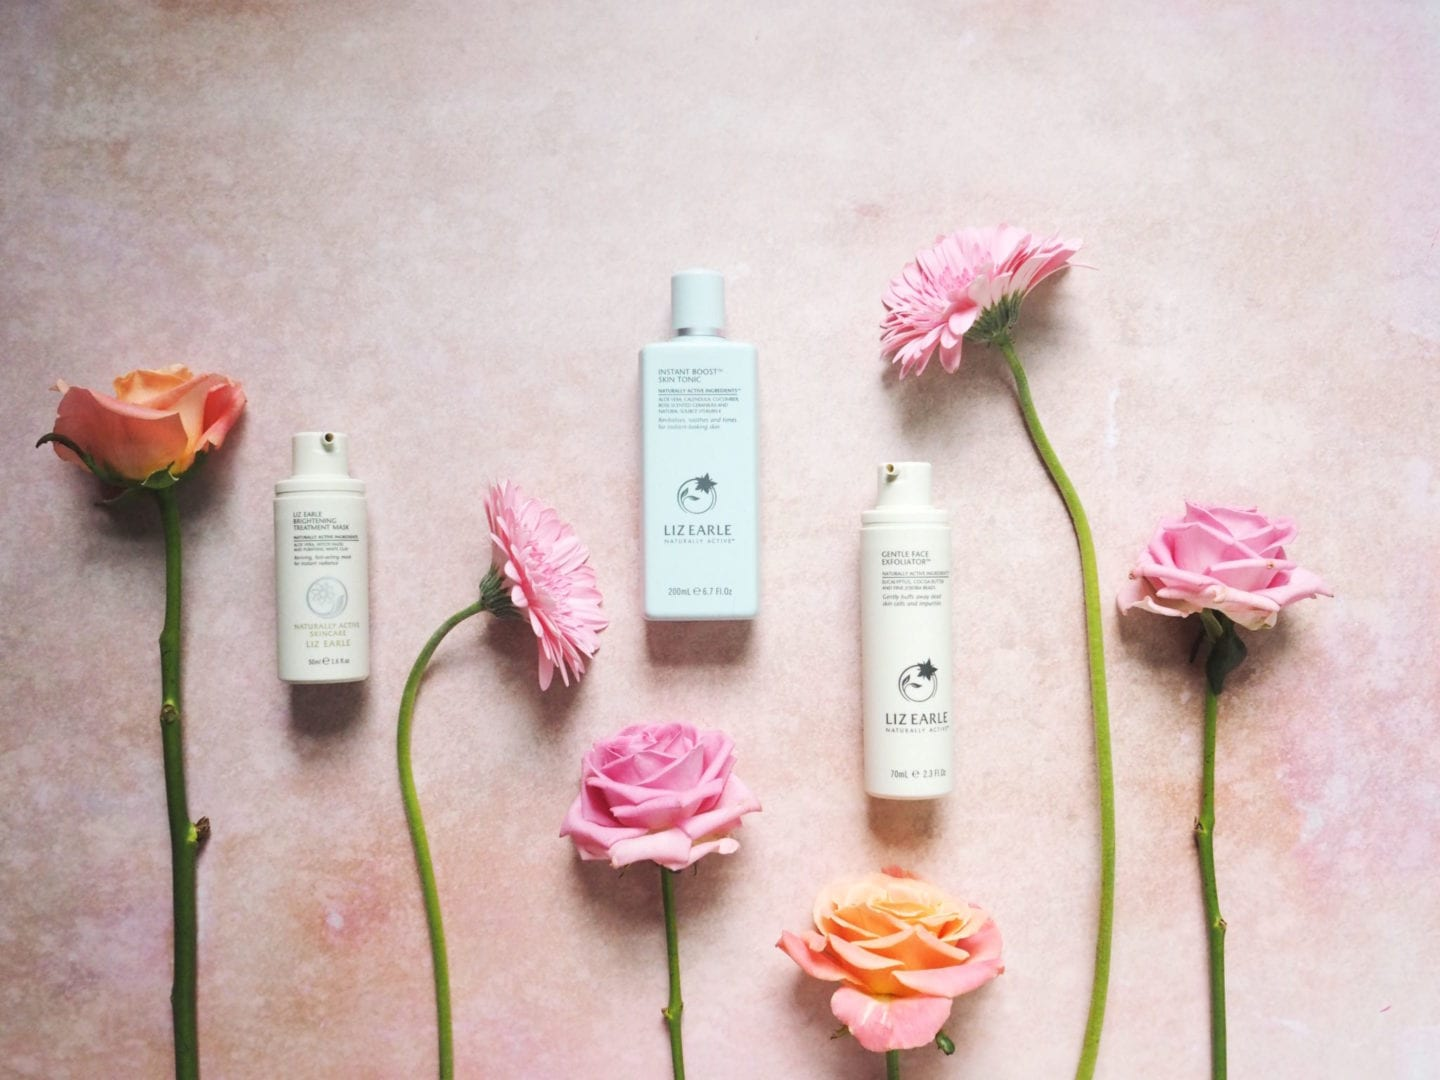 Wedding: Getting Ready For The Big Day With Liz Earle